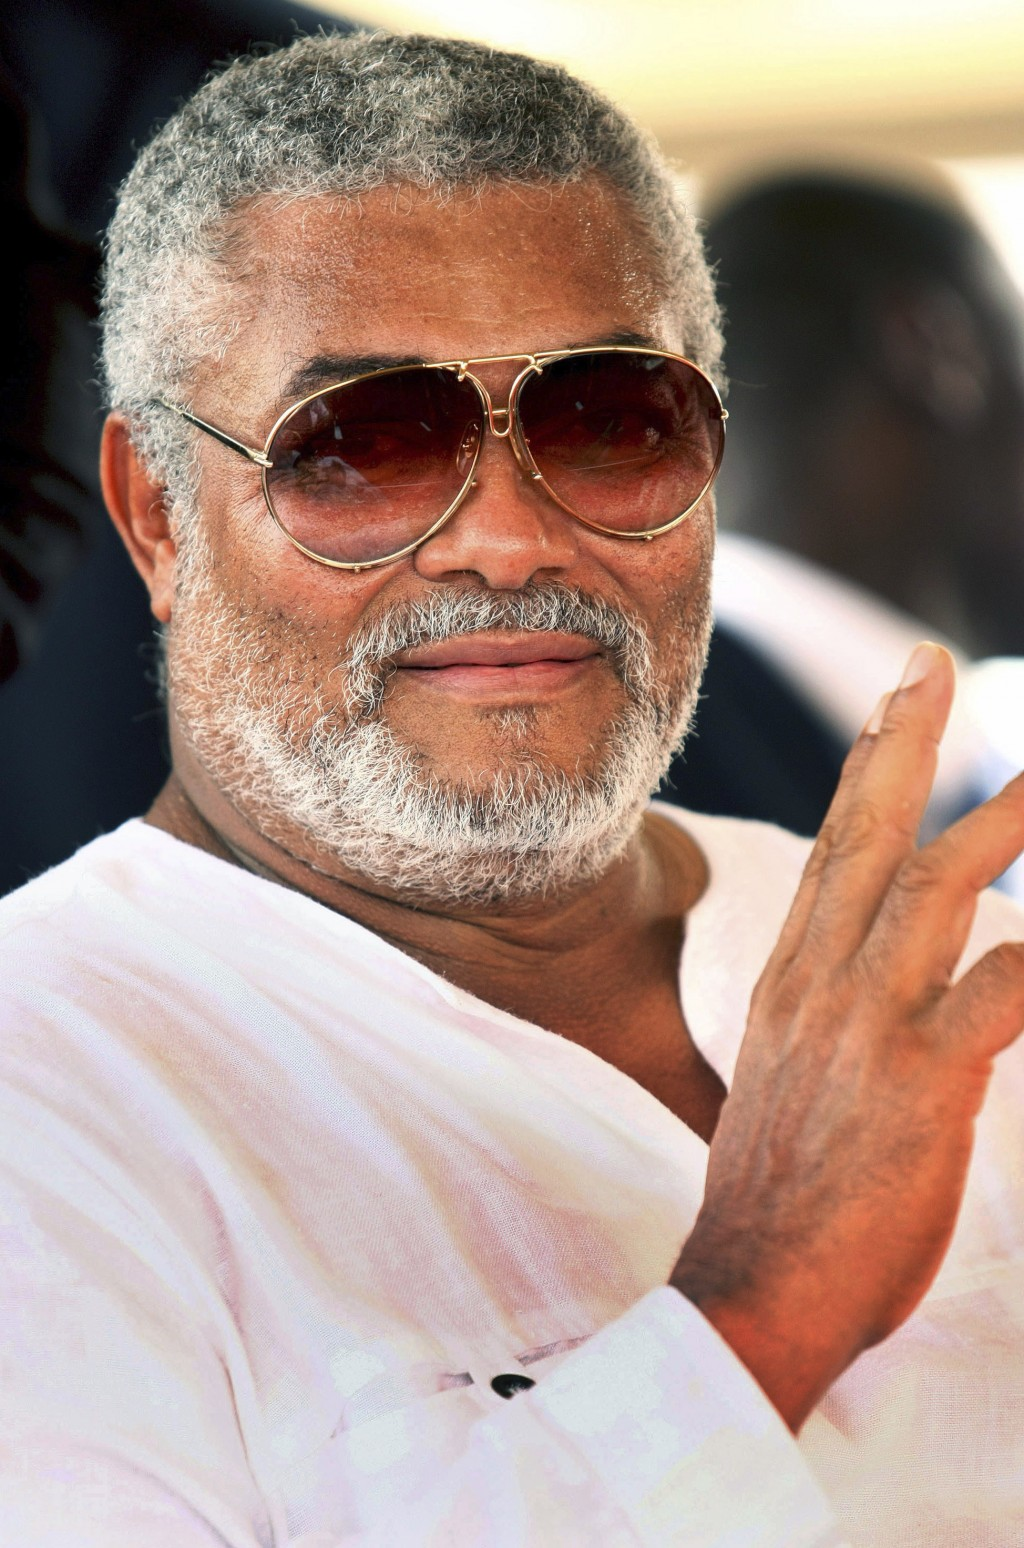 FILE - In this Wednesday, Jan. 7, 2009 file photo, former Ghanaian president Jerry Rawlings attends the inauguration ceremony of Ghana's new President...